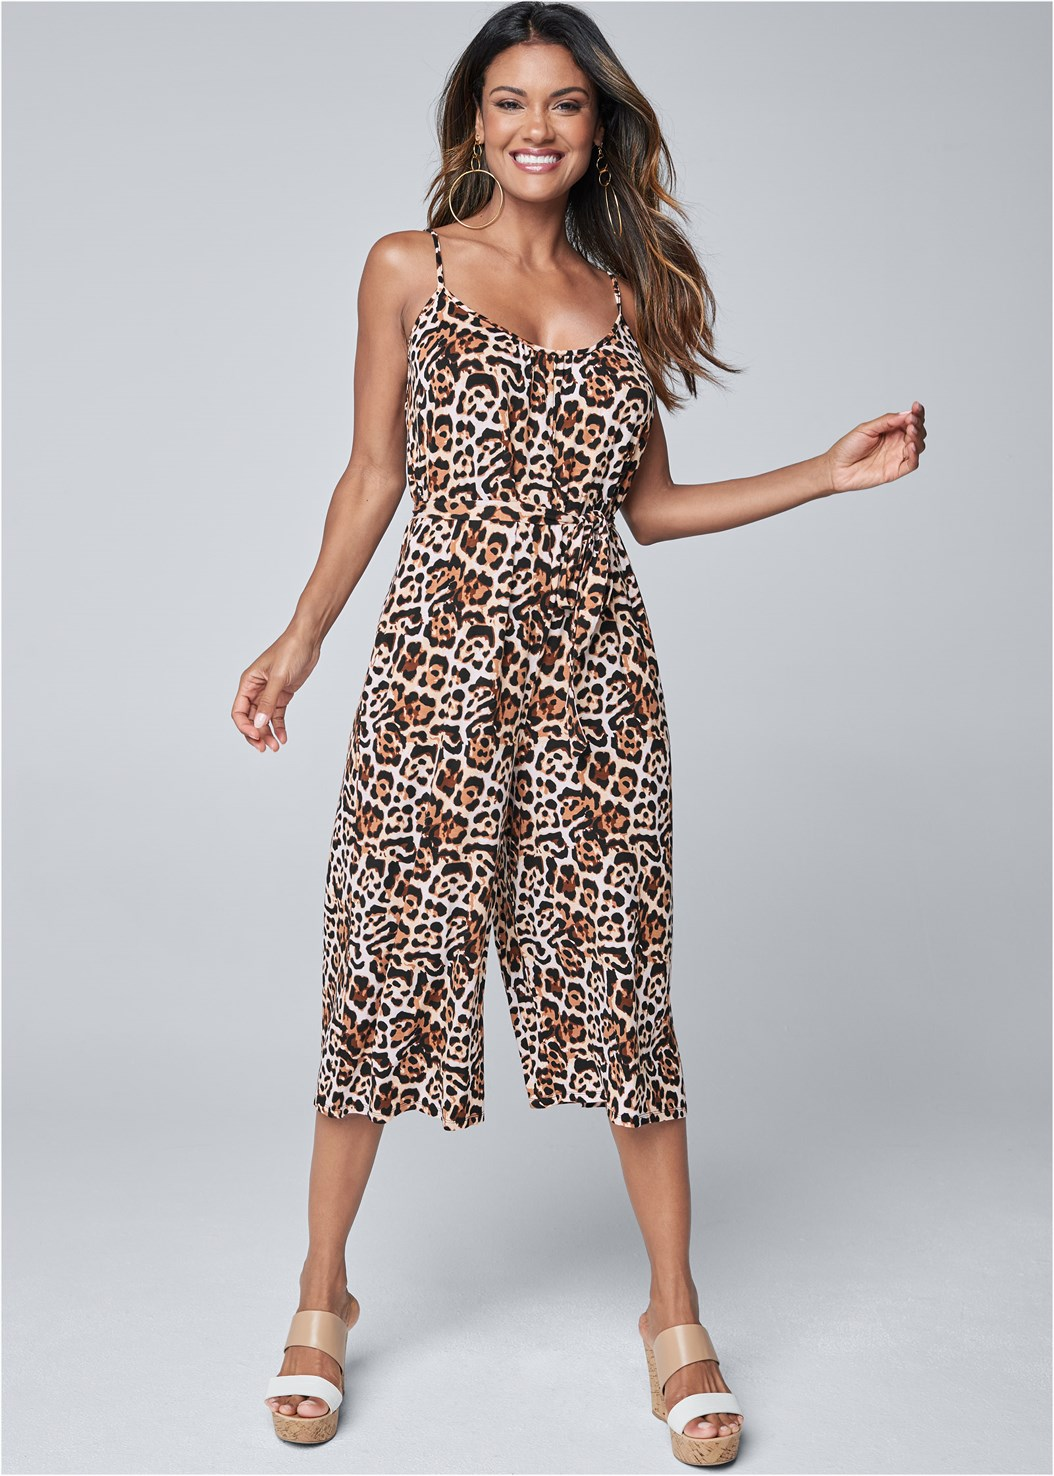 Casual Jumpsuit,Double Strap Cork Wedge